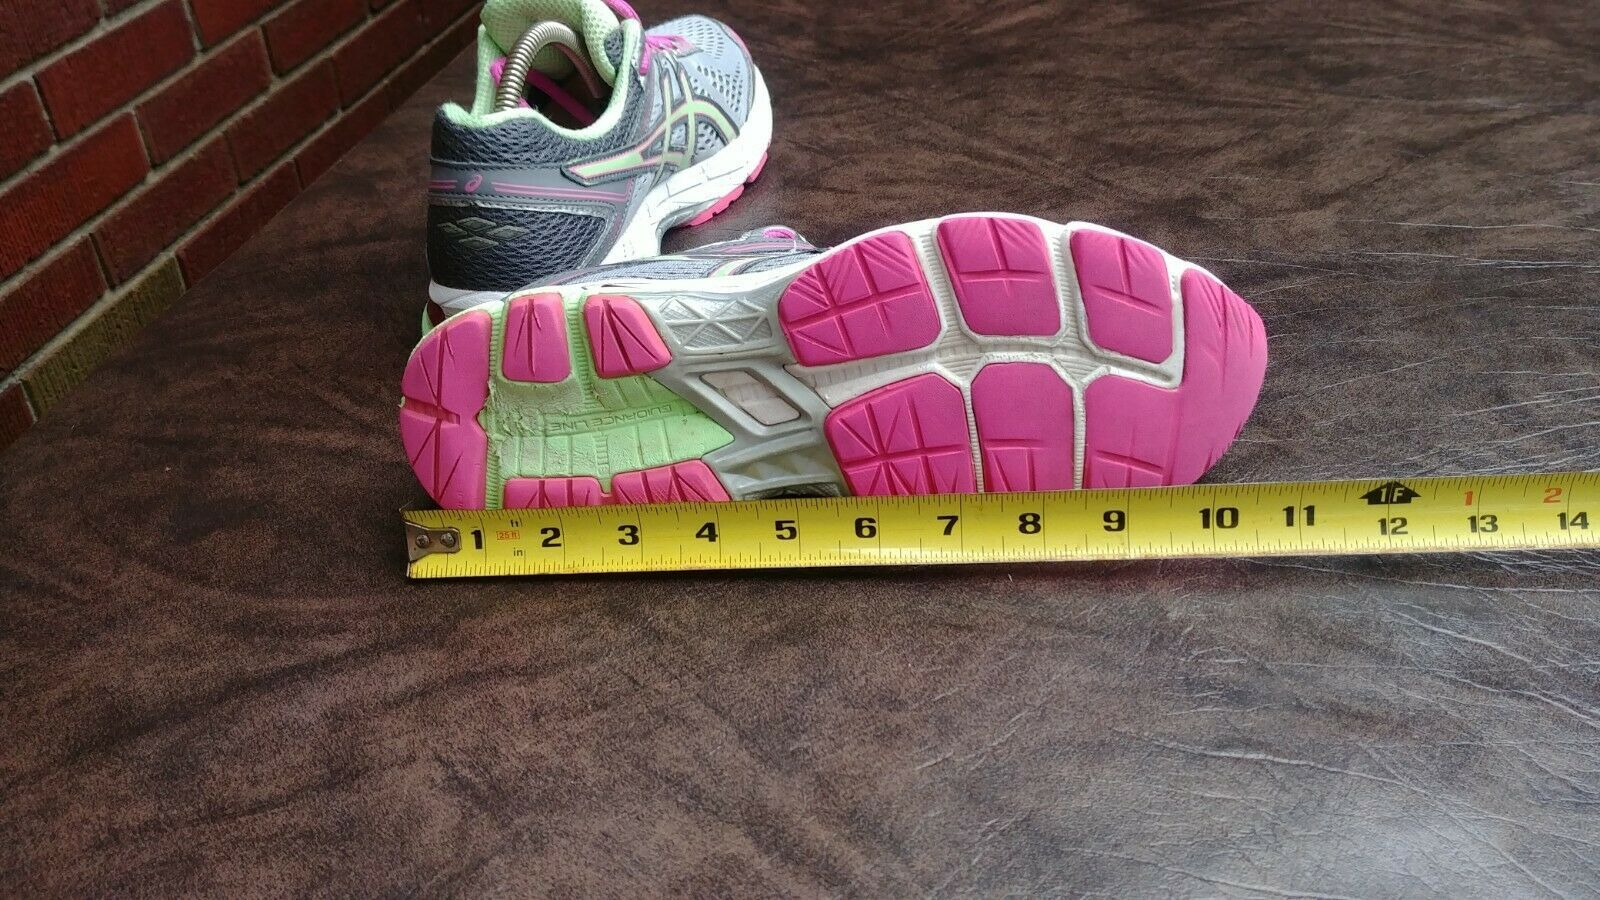 Womens Asics GT 1000 4 Running Shoes SZ 8 39.5 Used t5a7n Sneakers Trainers image 10